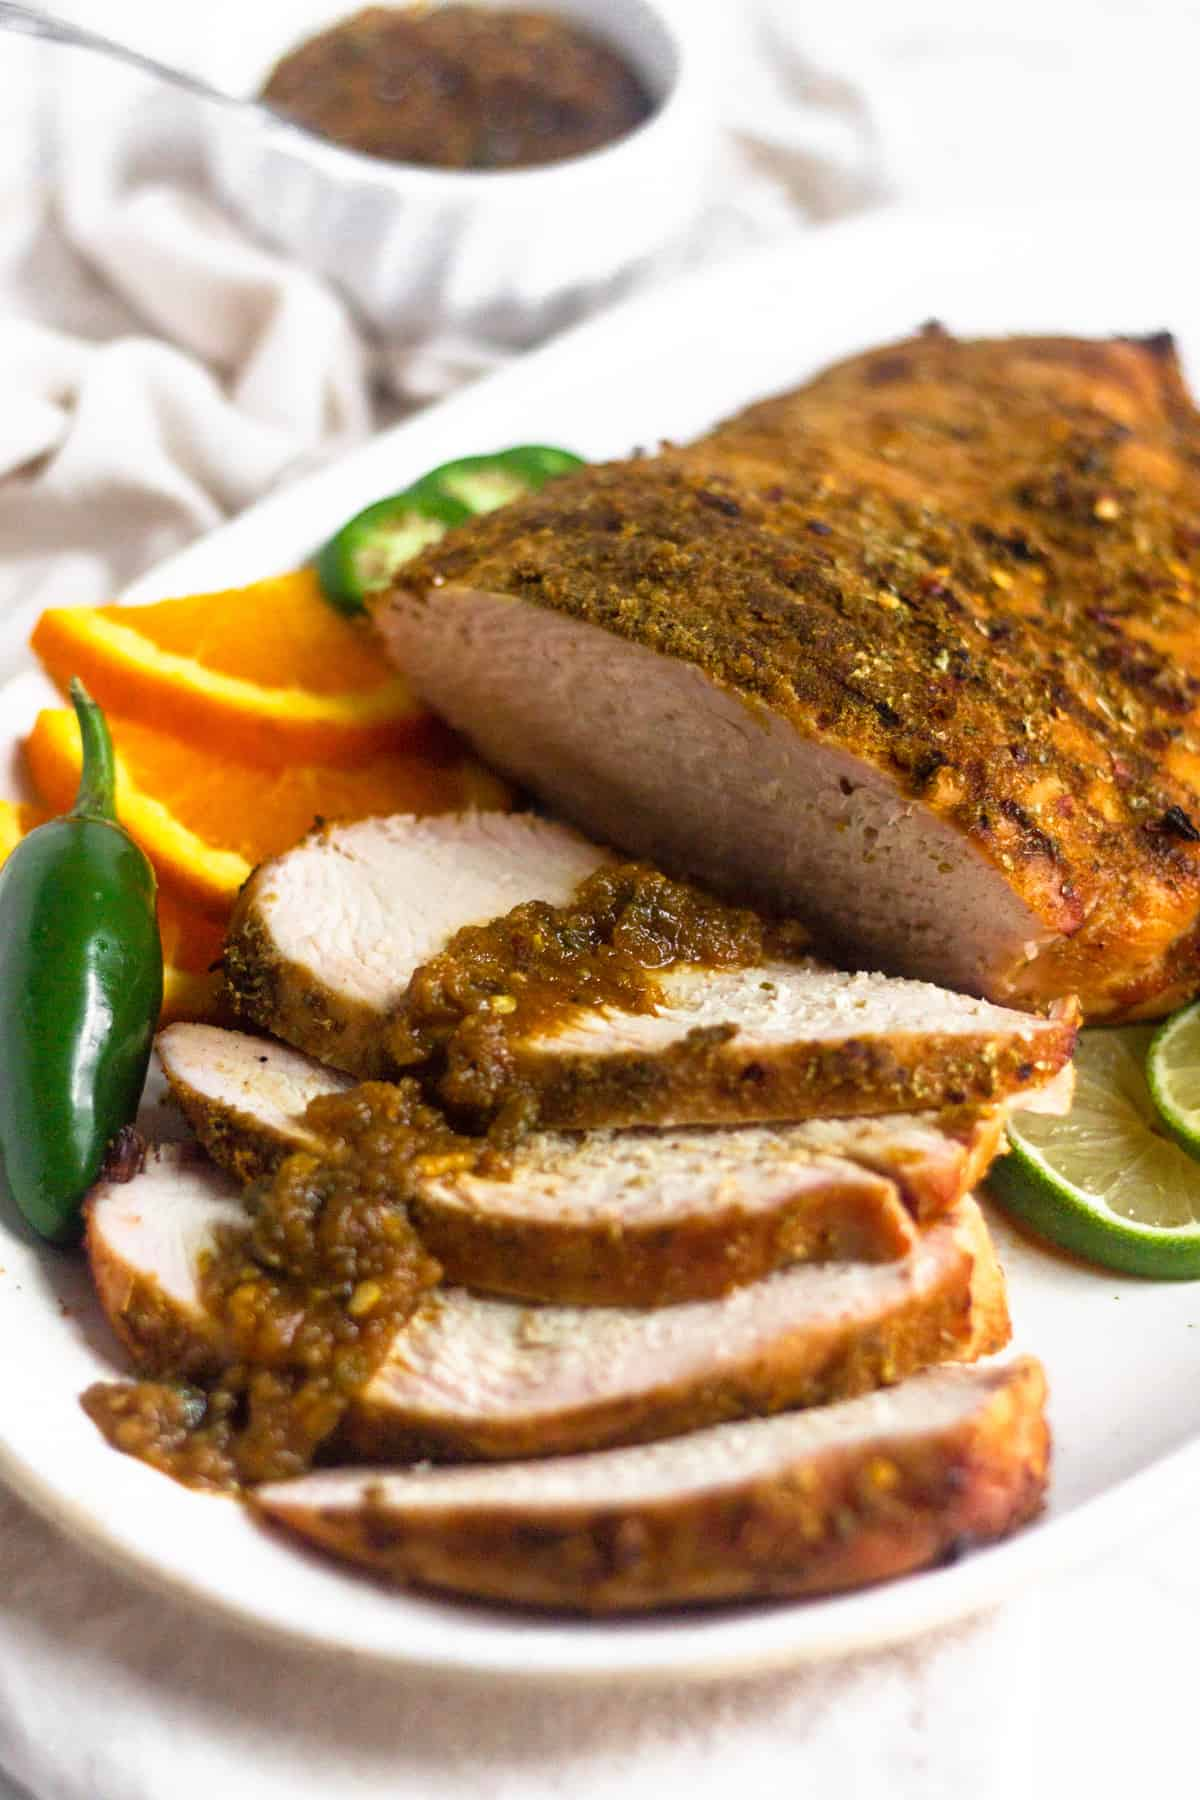 A platter of citrus grilled turkey breast with a spicy citrus sauce overtop the cut pieces